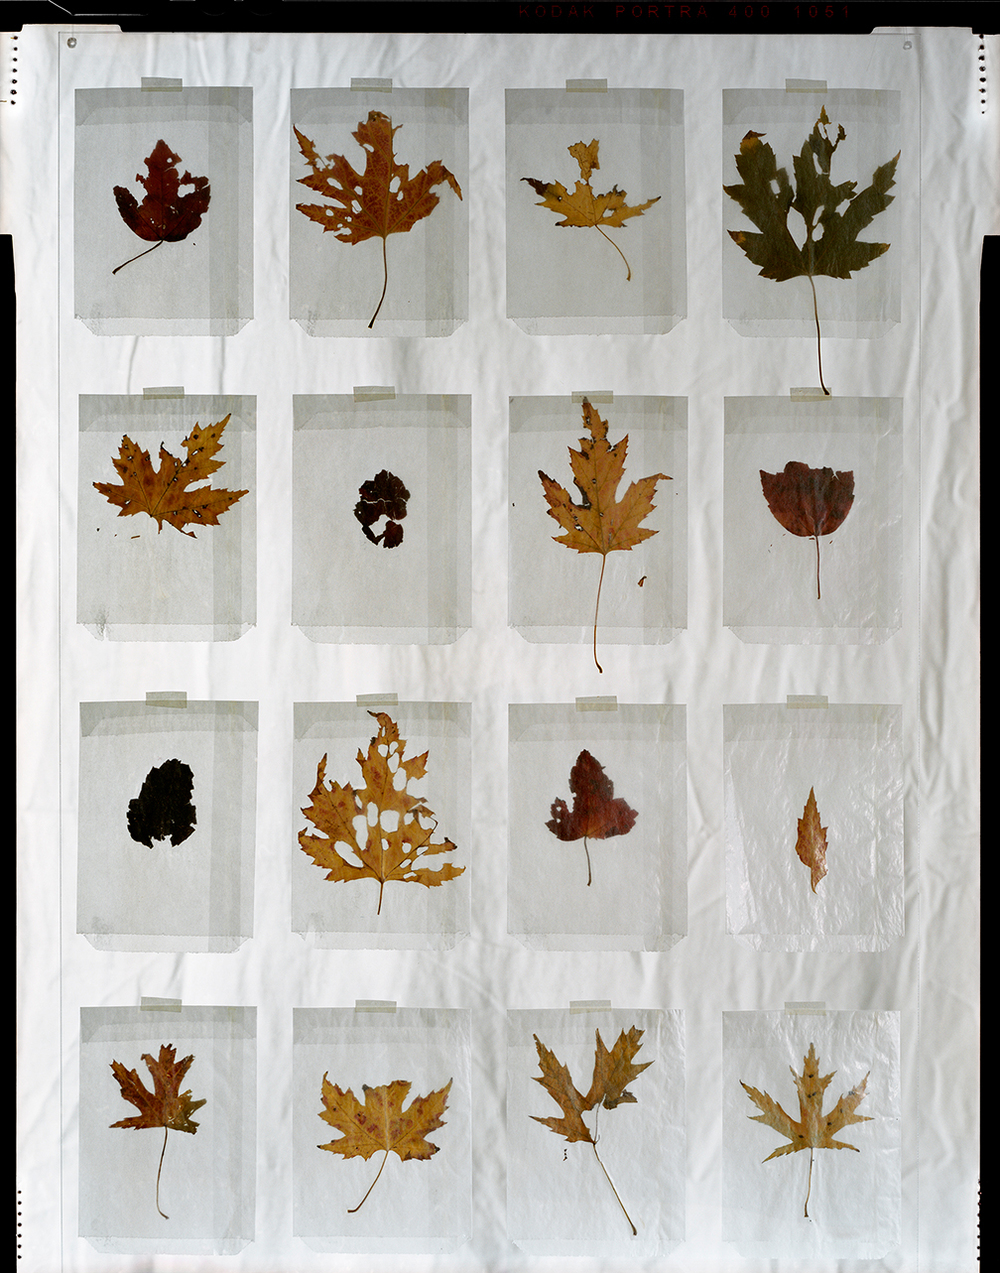 Grid of Leaves (2013)